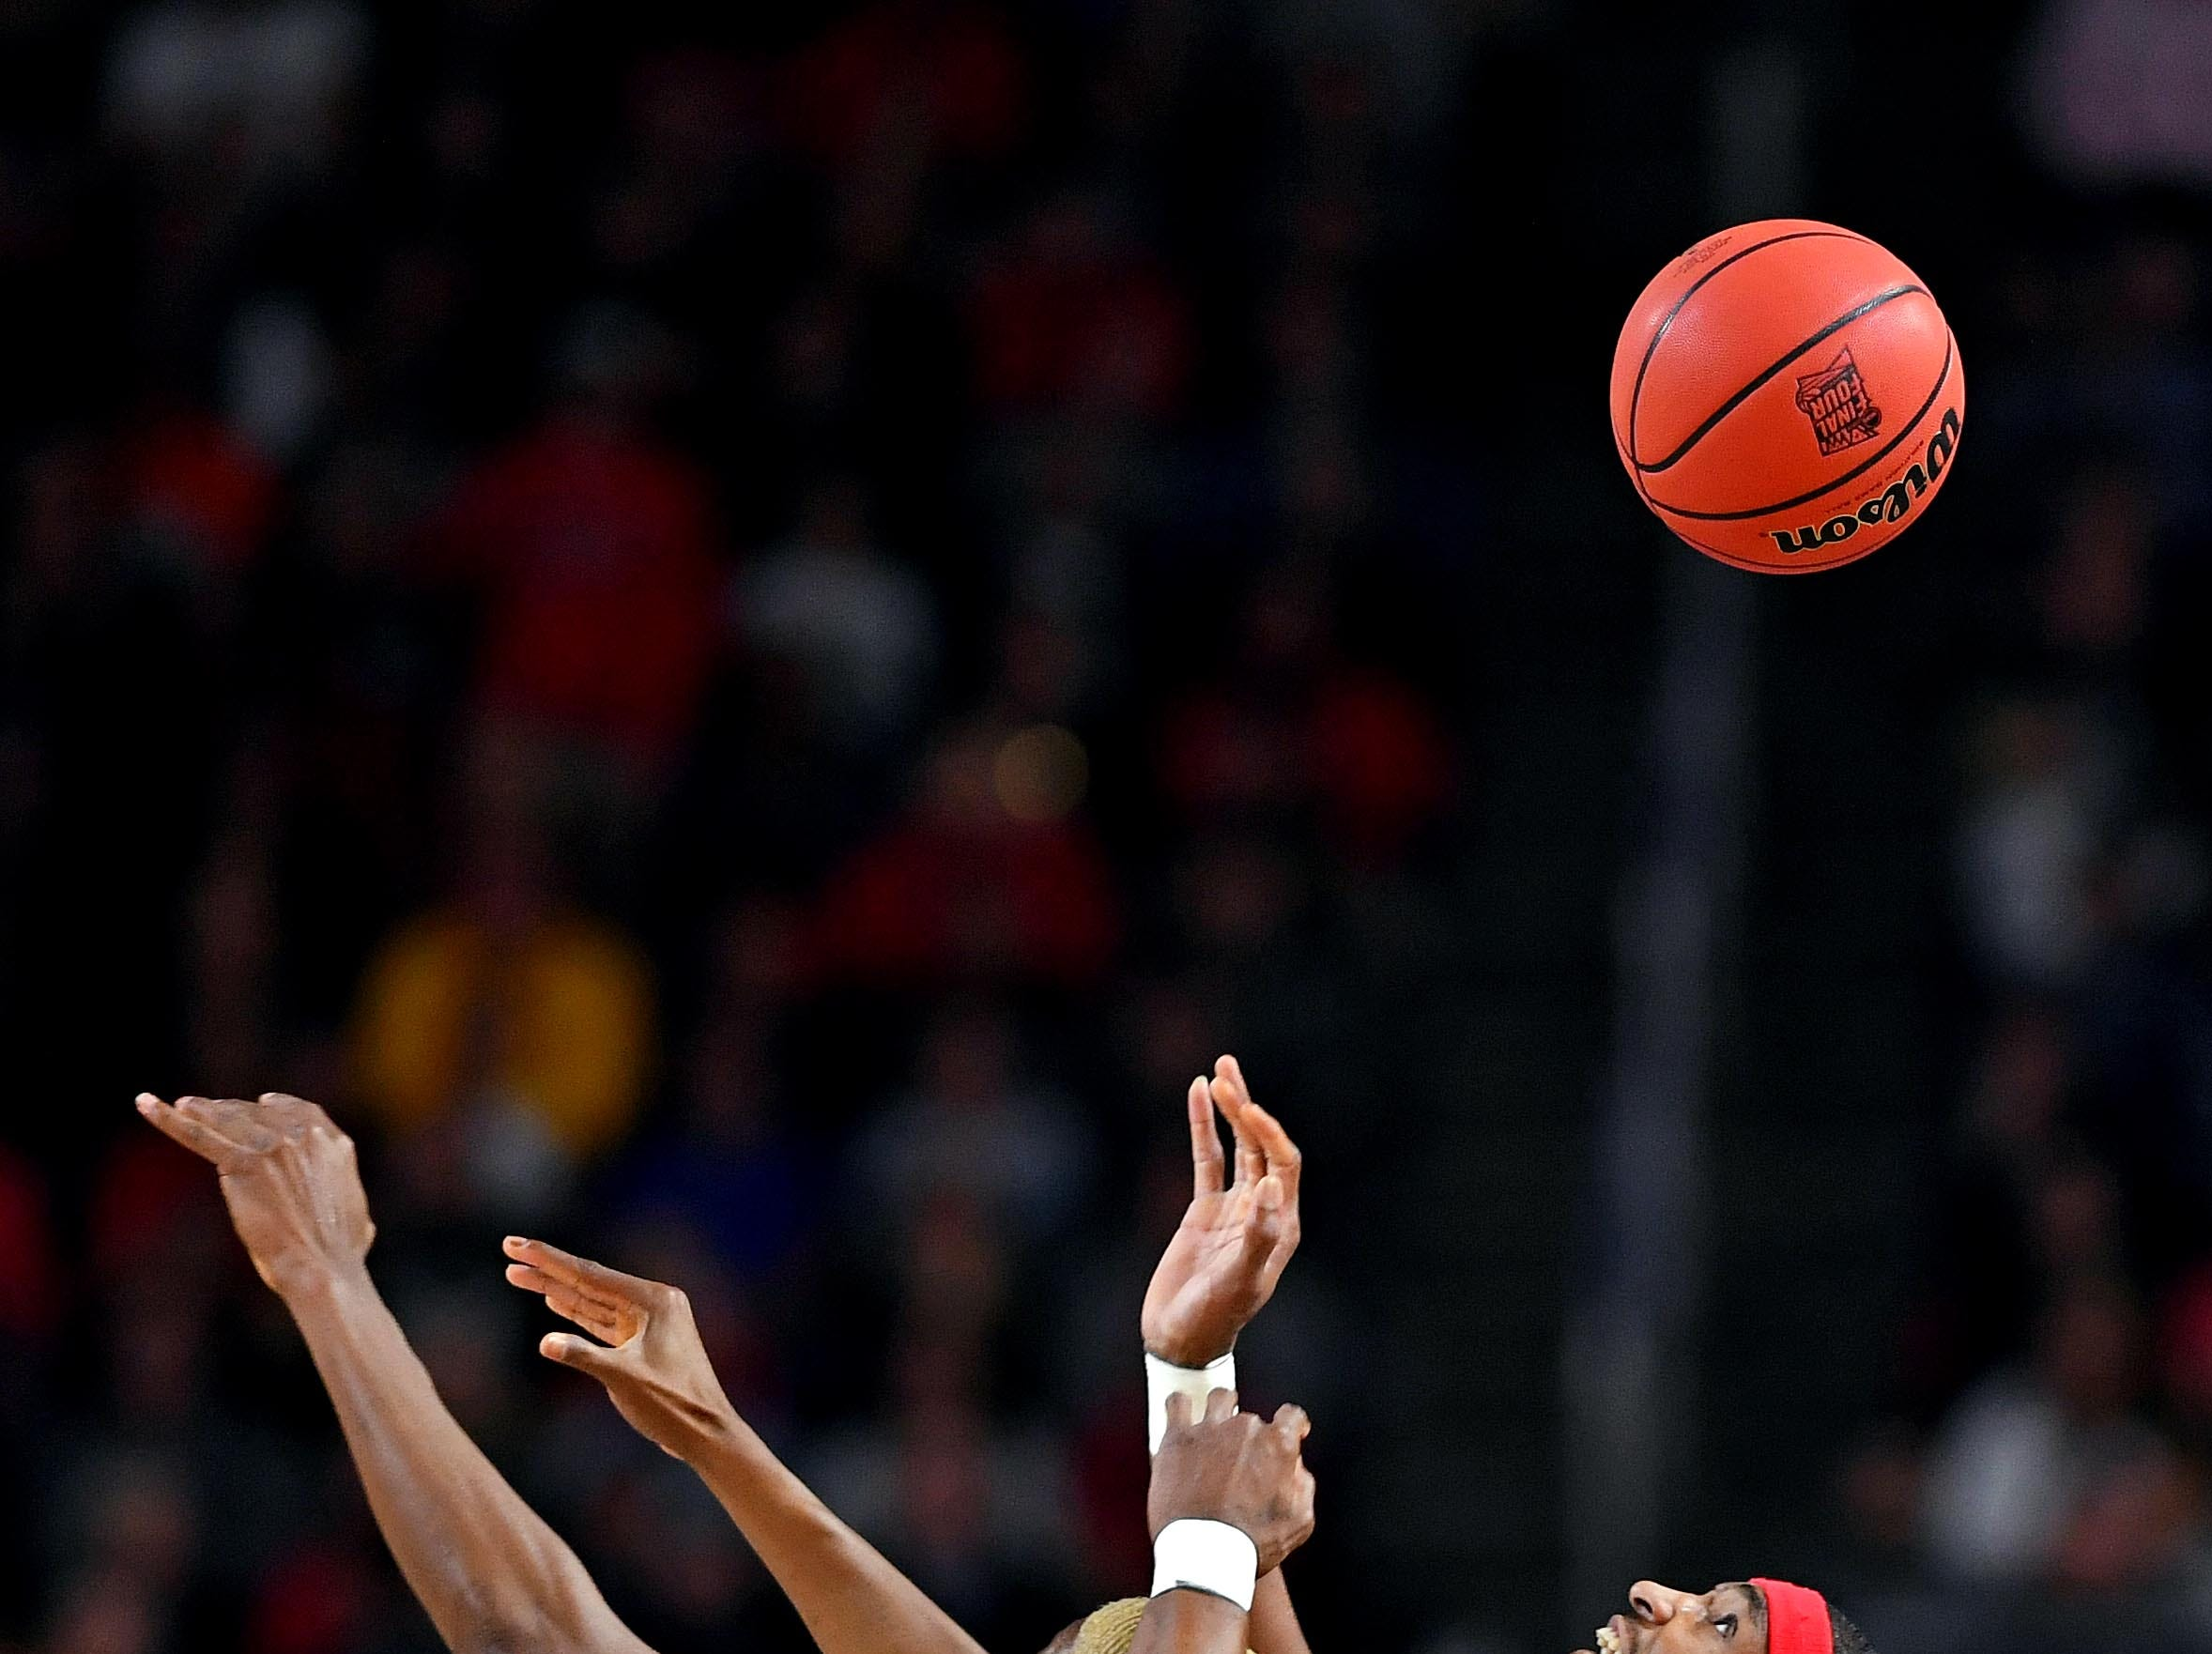 Apr 8, 2019; Minneapolis, MN, USA; Texas Tech Red Raiders forward Tariq Owens (11) and Virginia Cavaliers forward Mamadi Diakite (25) go for a rebound in the championship game of the 2019 men's Final Four at US Bank Stadium. Mandatory Credit: Bob Donnan-USA TODAY Sports